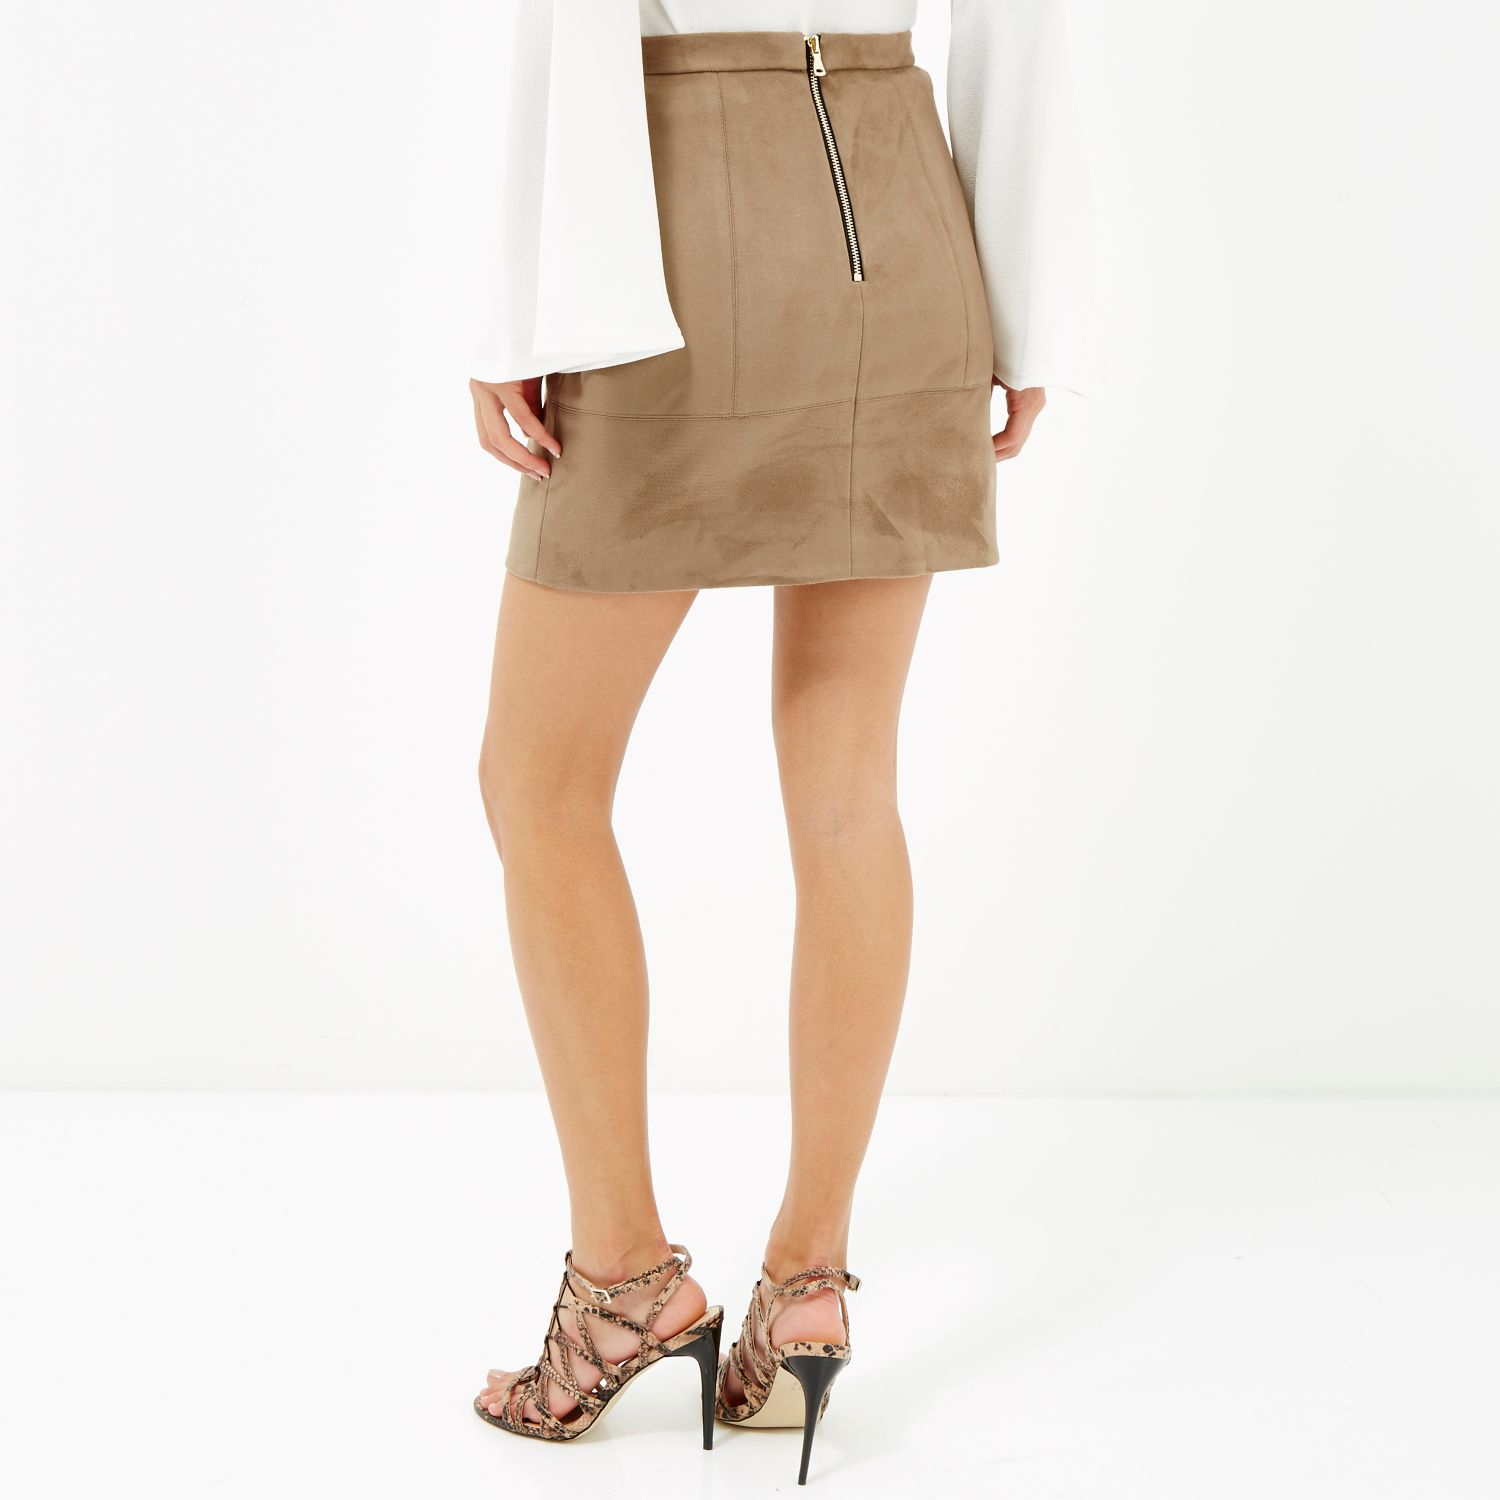 River island Light Brown Faux-suede A-line Skirt in Brown | Lyst